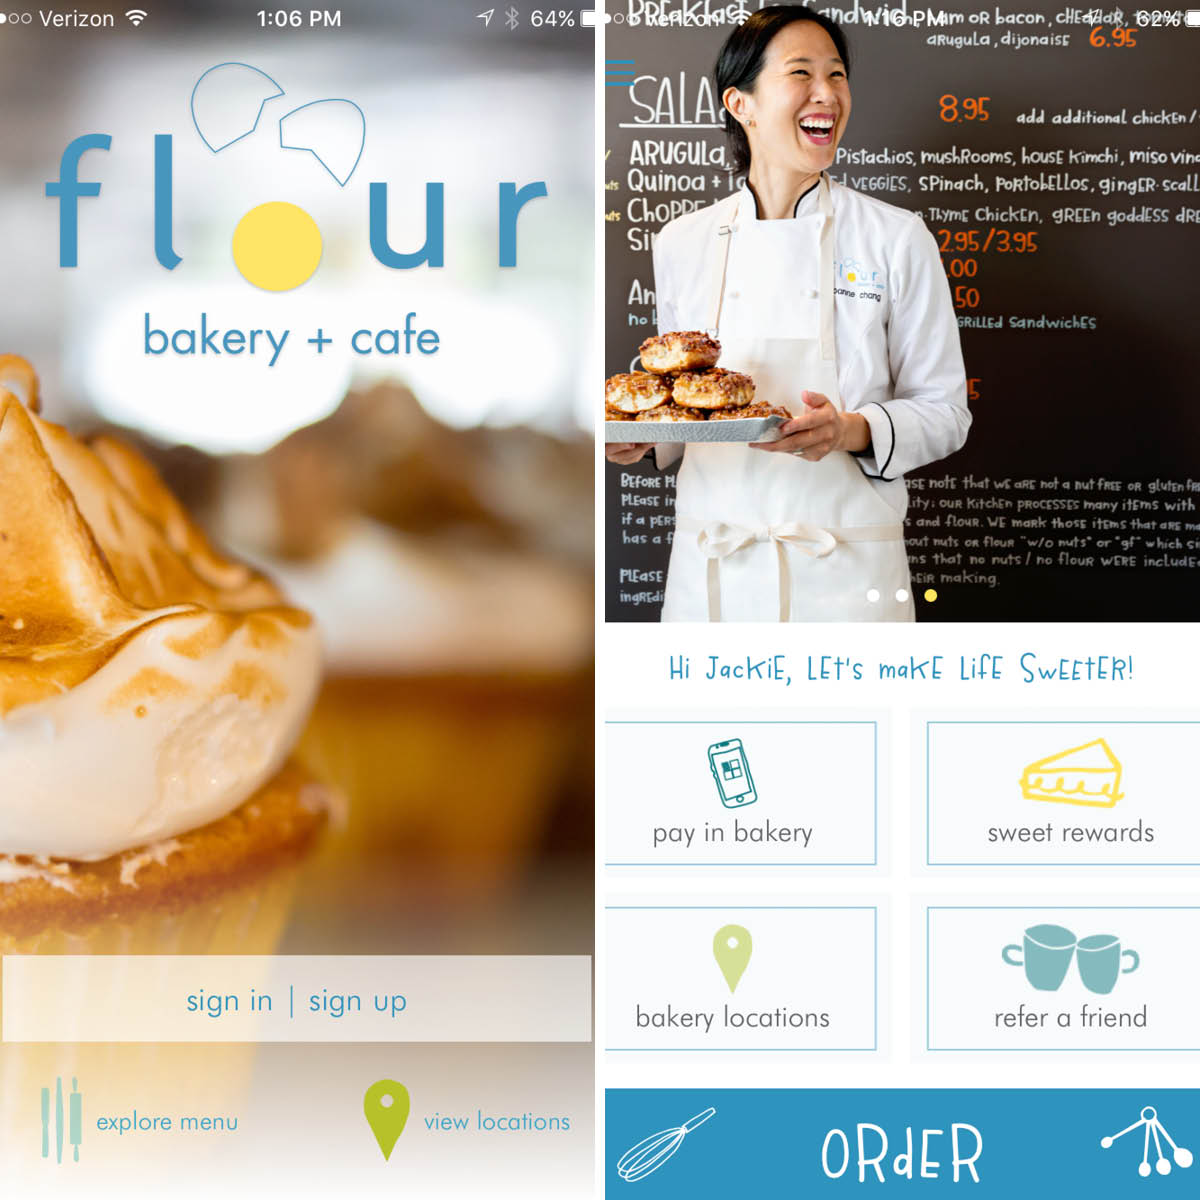 Flour Bakery + Cafe app